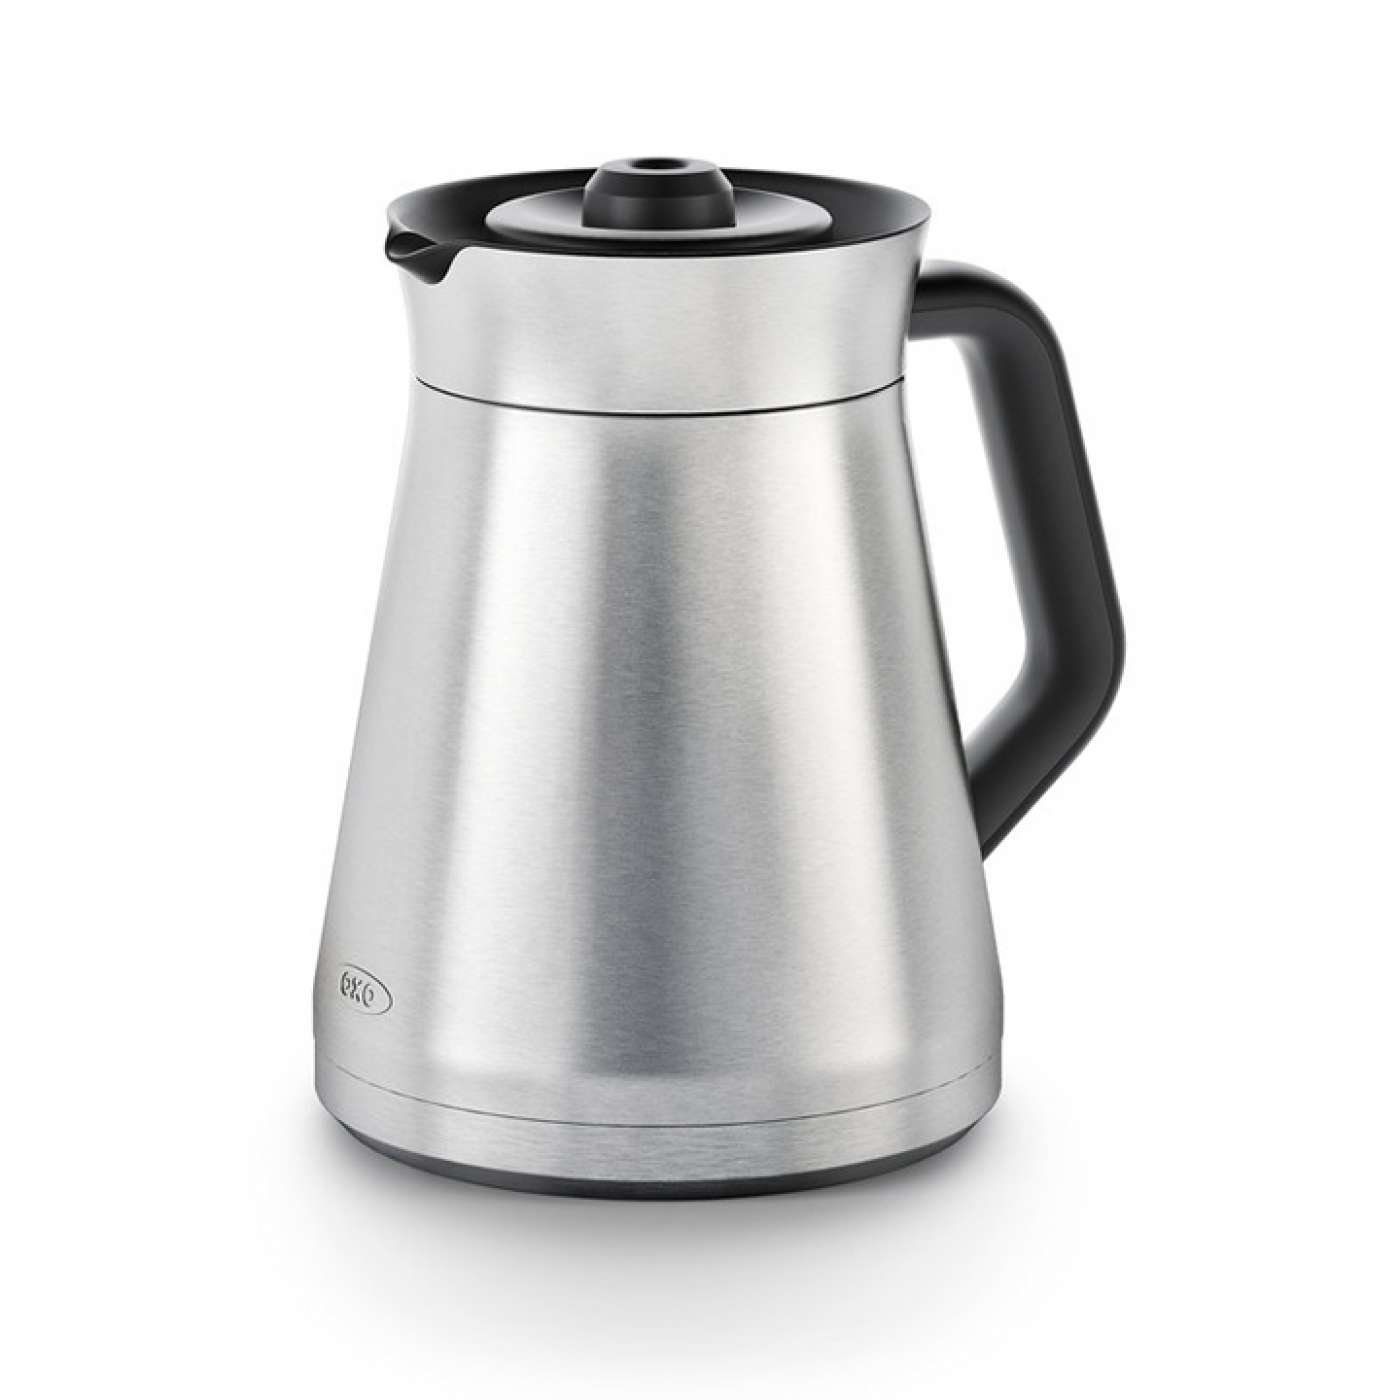 OXO On 12 Cup Coffee Maker and Brewing System Replacement Carafe by OXO